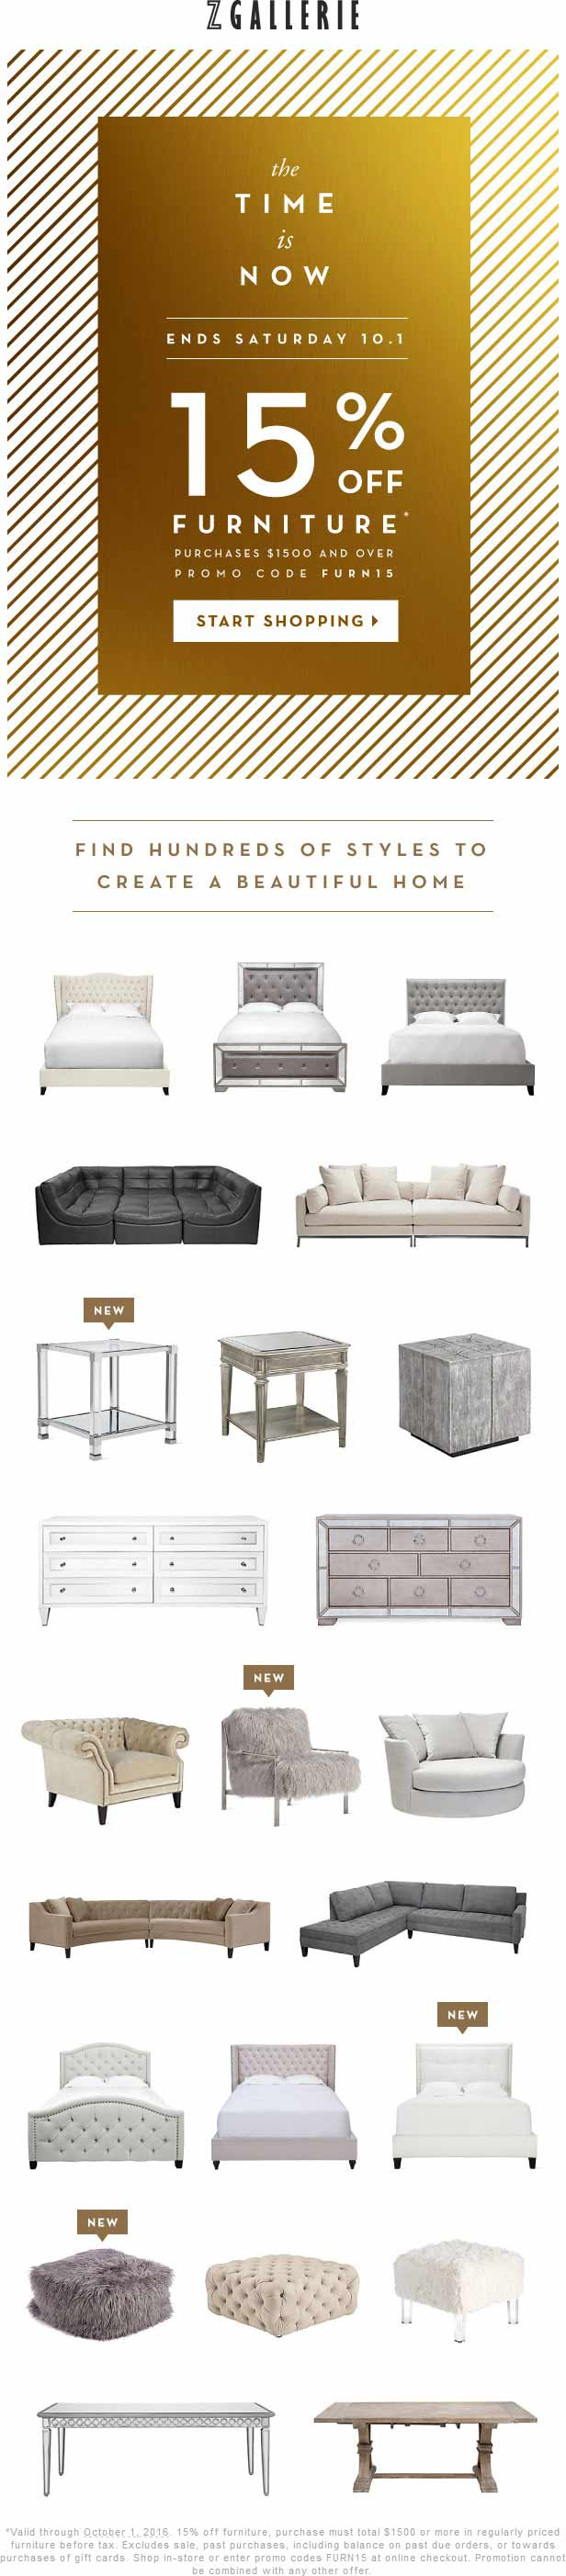 ZGallerie.com Promo Coupon 15% off $1500 on furniture at Z Gallerie, or online via promo code FURN15